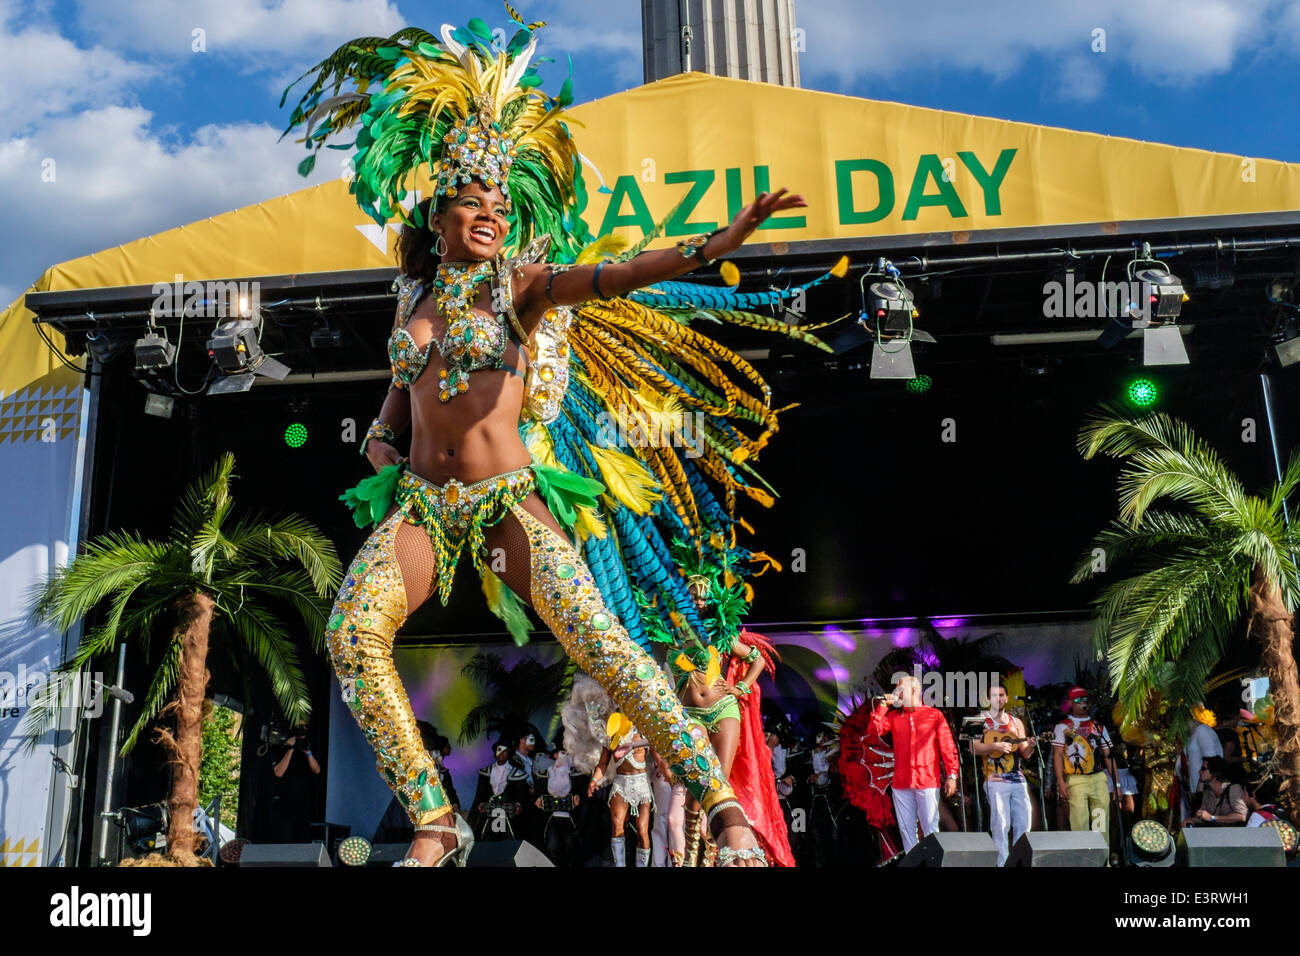 Dancers from Paraiso School of Samba perform on stage at the Brazil Day Festival in Trafalgar Square, London UK - Stock Image